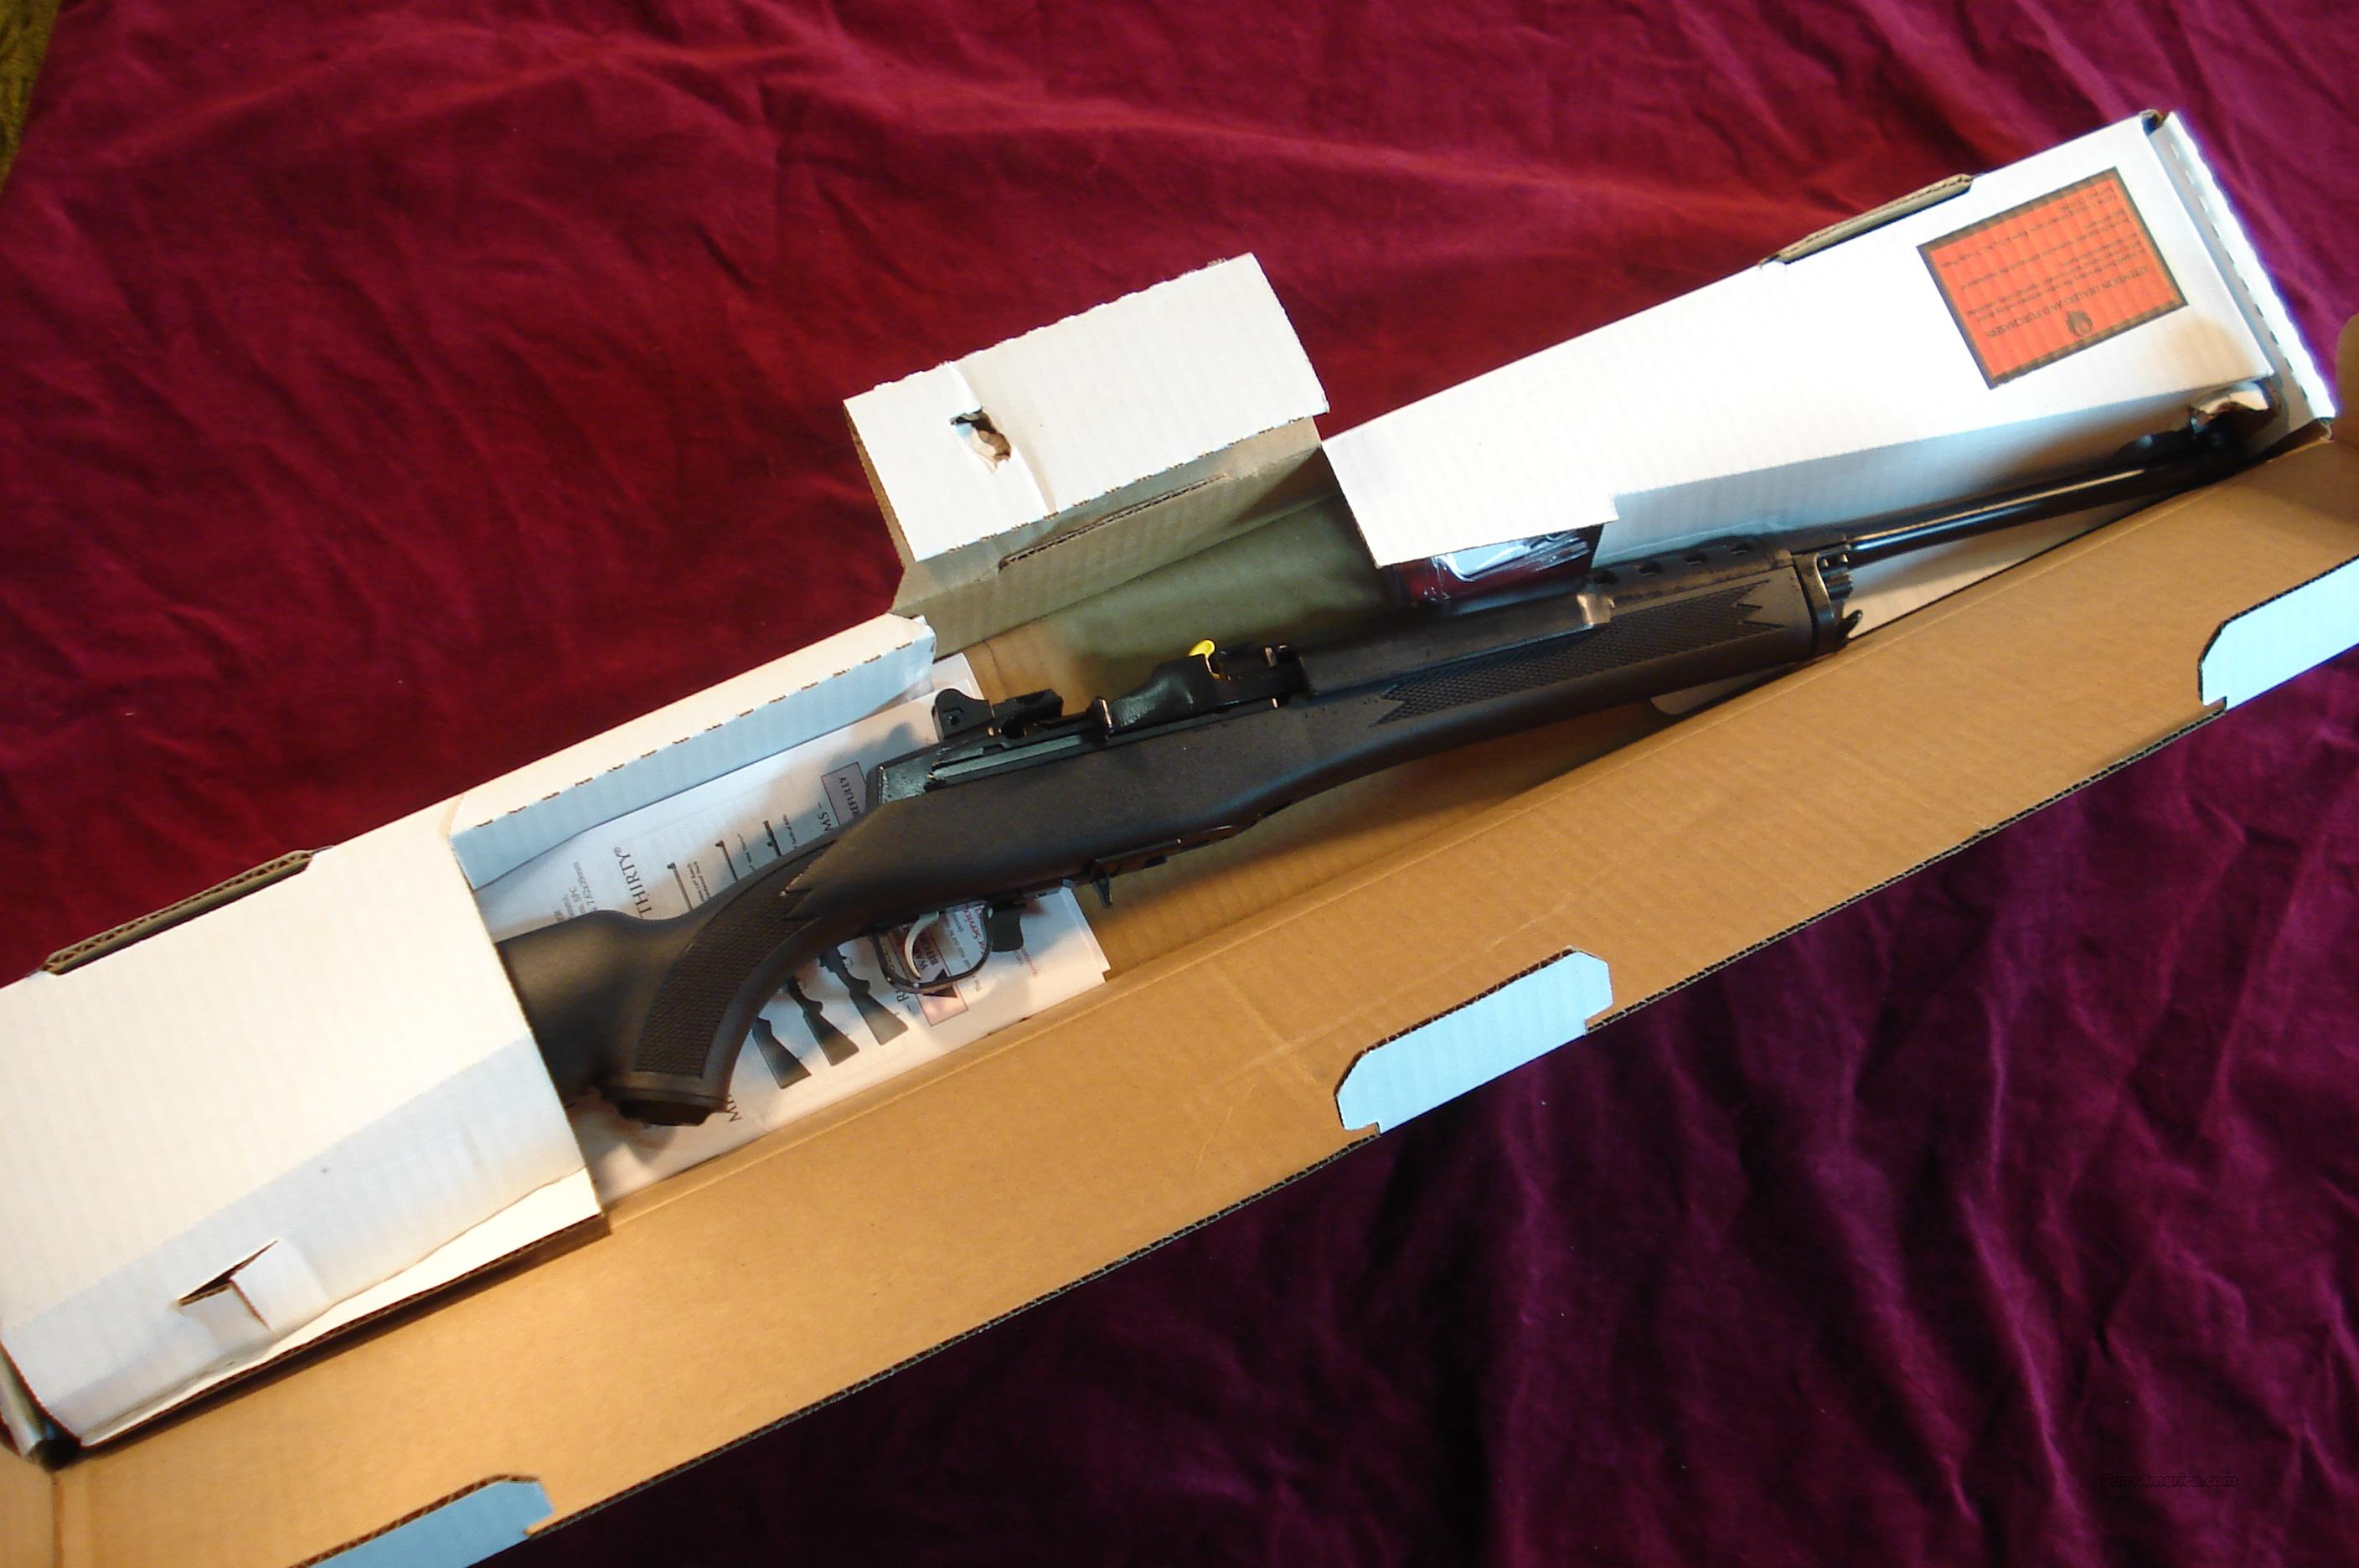 RUGER  MINI 14 RANCH 5 ROUND MAGAZINE NEW   Guns > Rifles > Ruger Rifles > Mini-14 Type